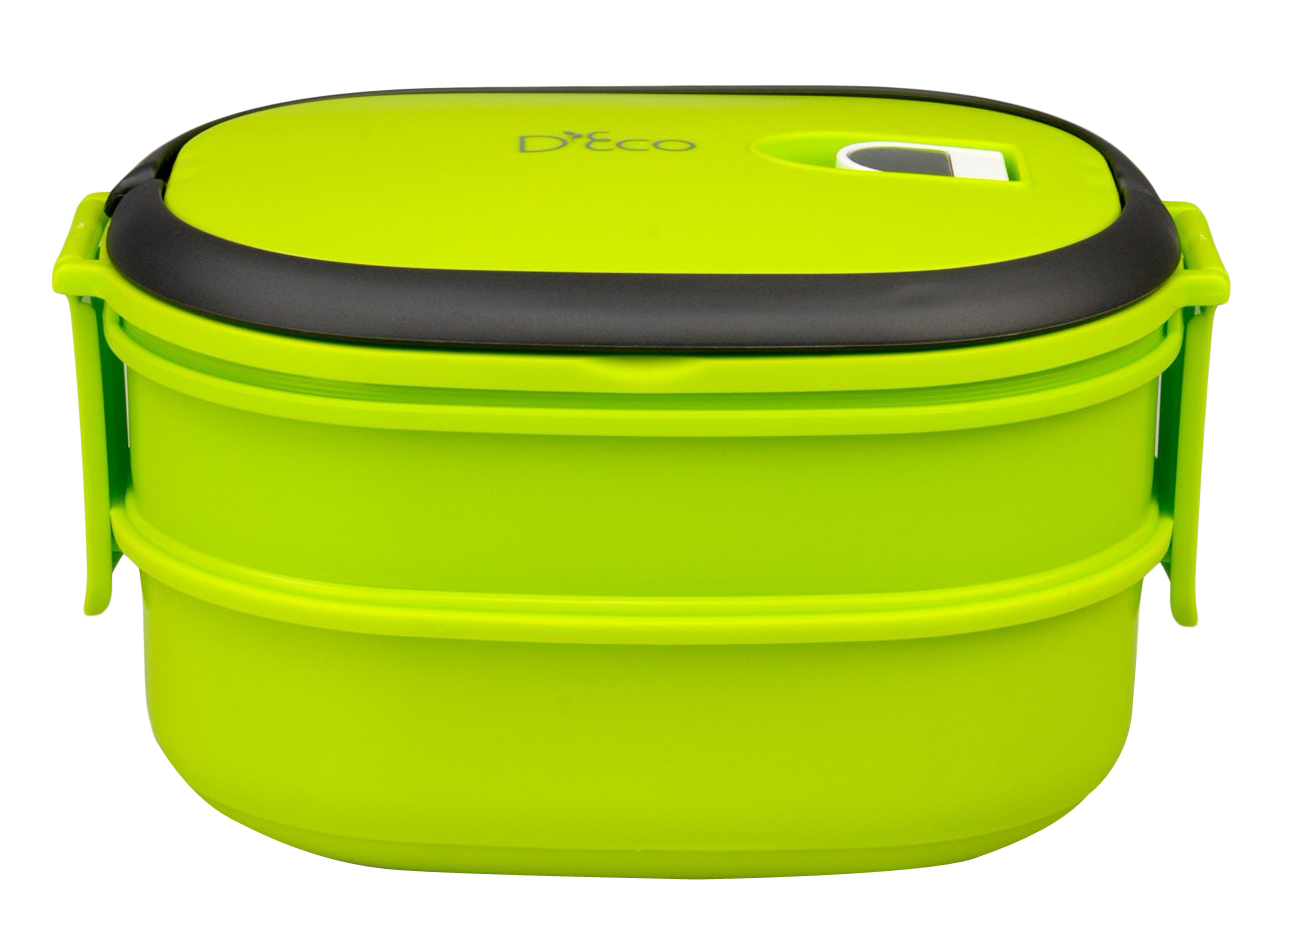 Lunch box png image. Lunchbox clipart transparent background